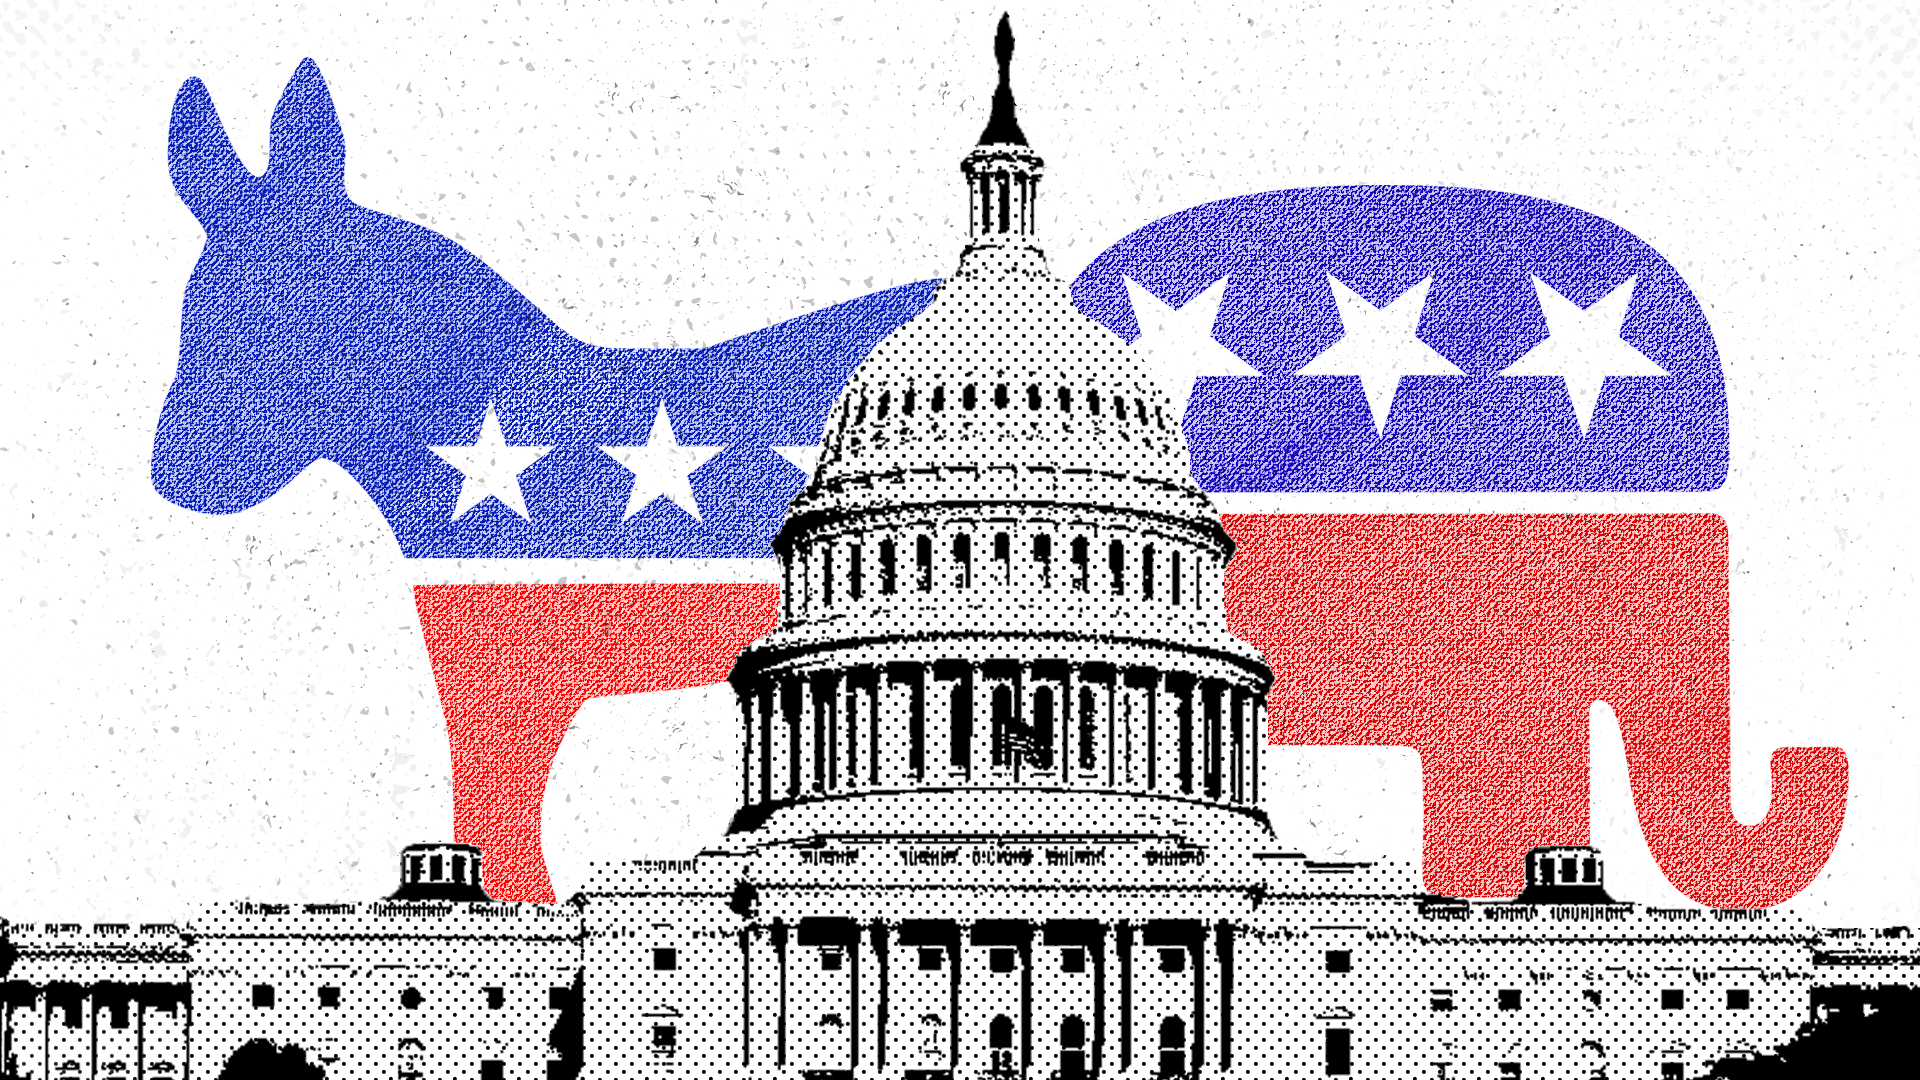 Infographic: What you need to know about the 2018 US midterm election